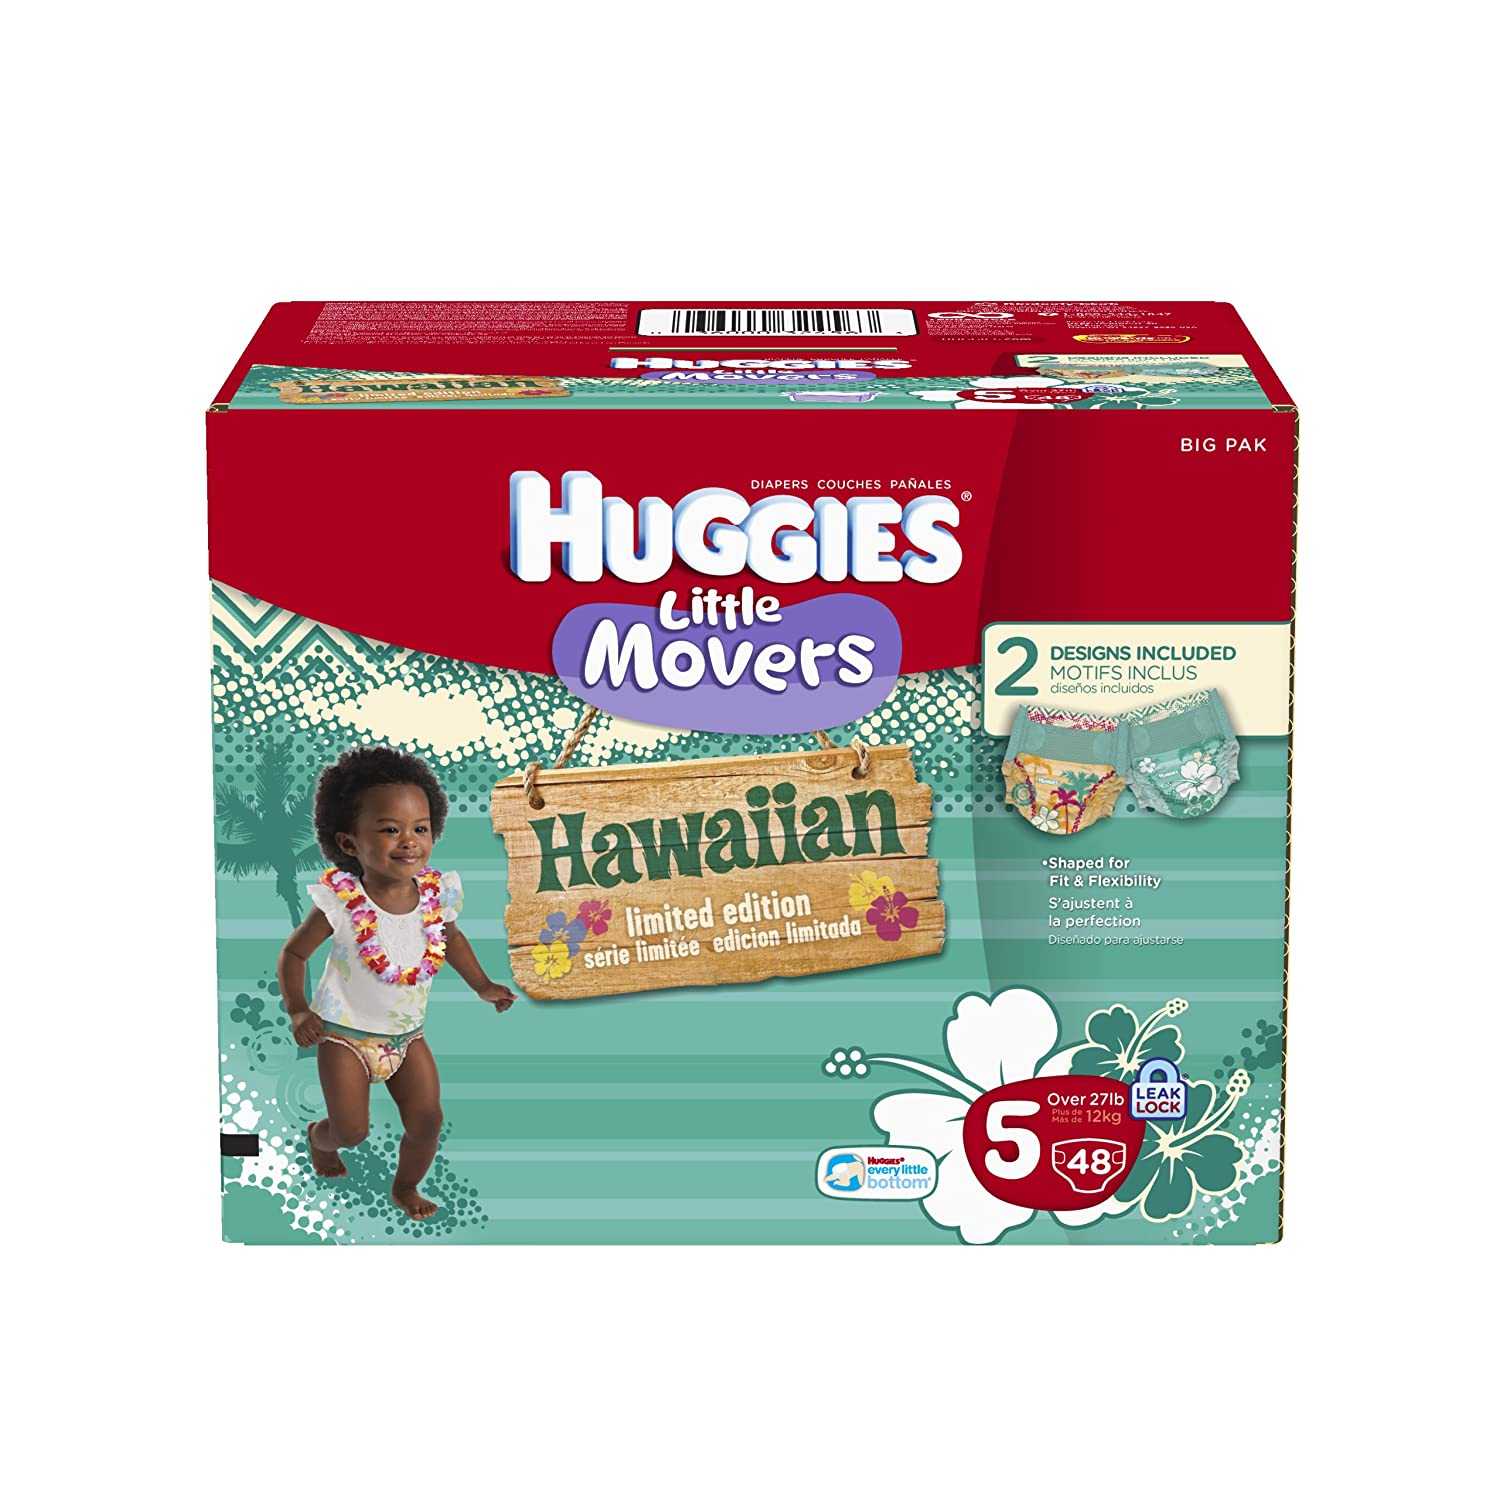 Amazon.com: Huggies Supreme Little Movers Hawaiian Diapers, Big Pack, Size 5, 48 Count: Health & Personal Care